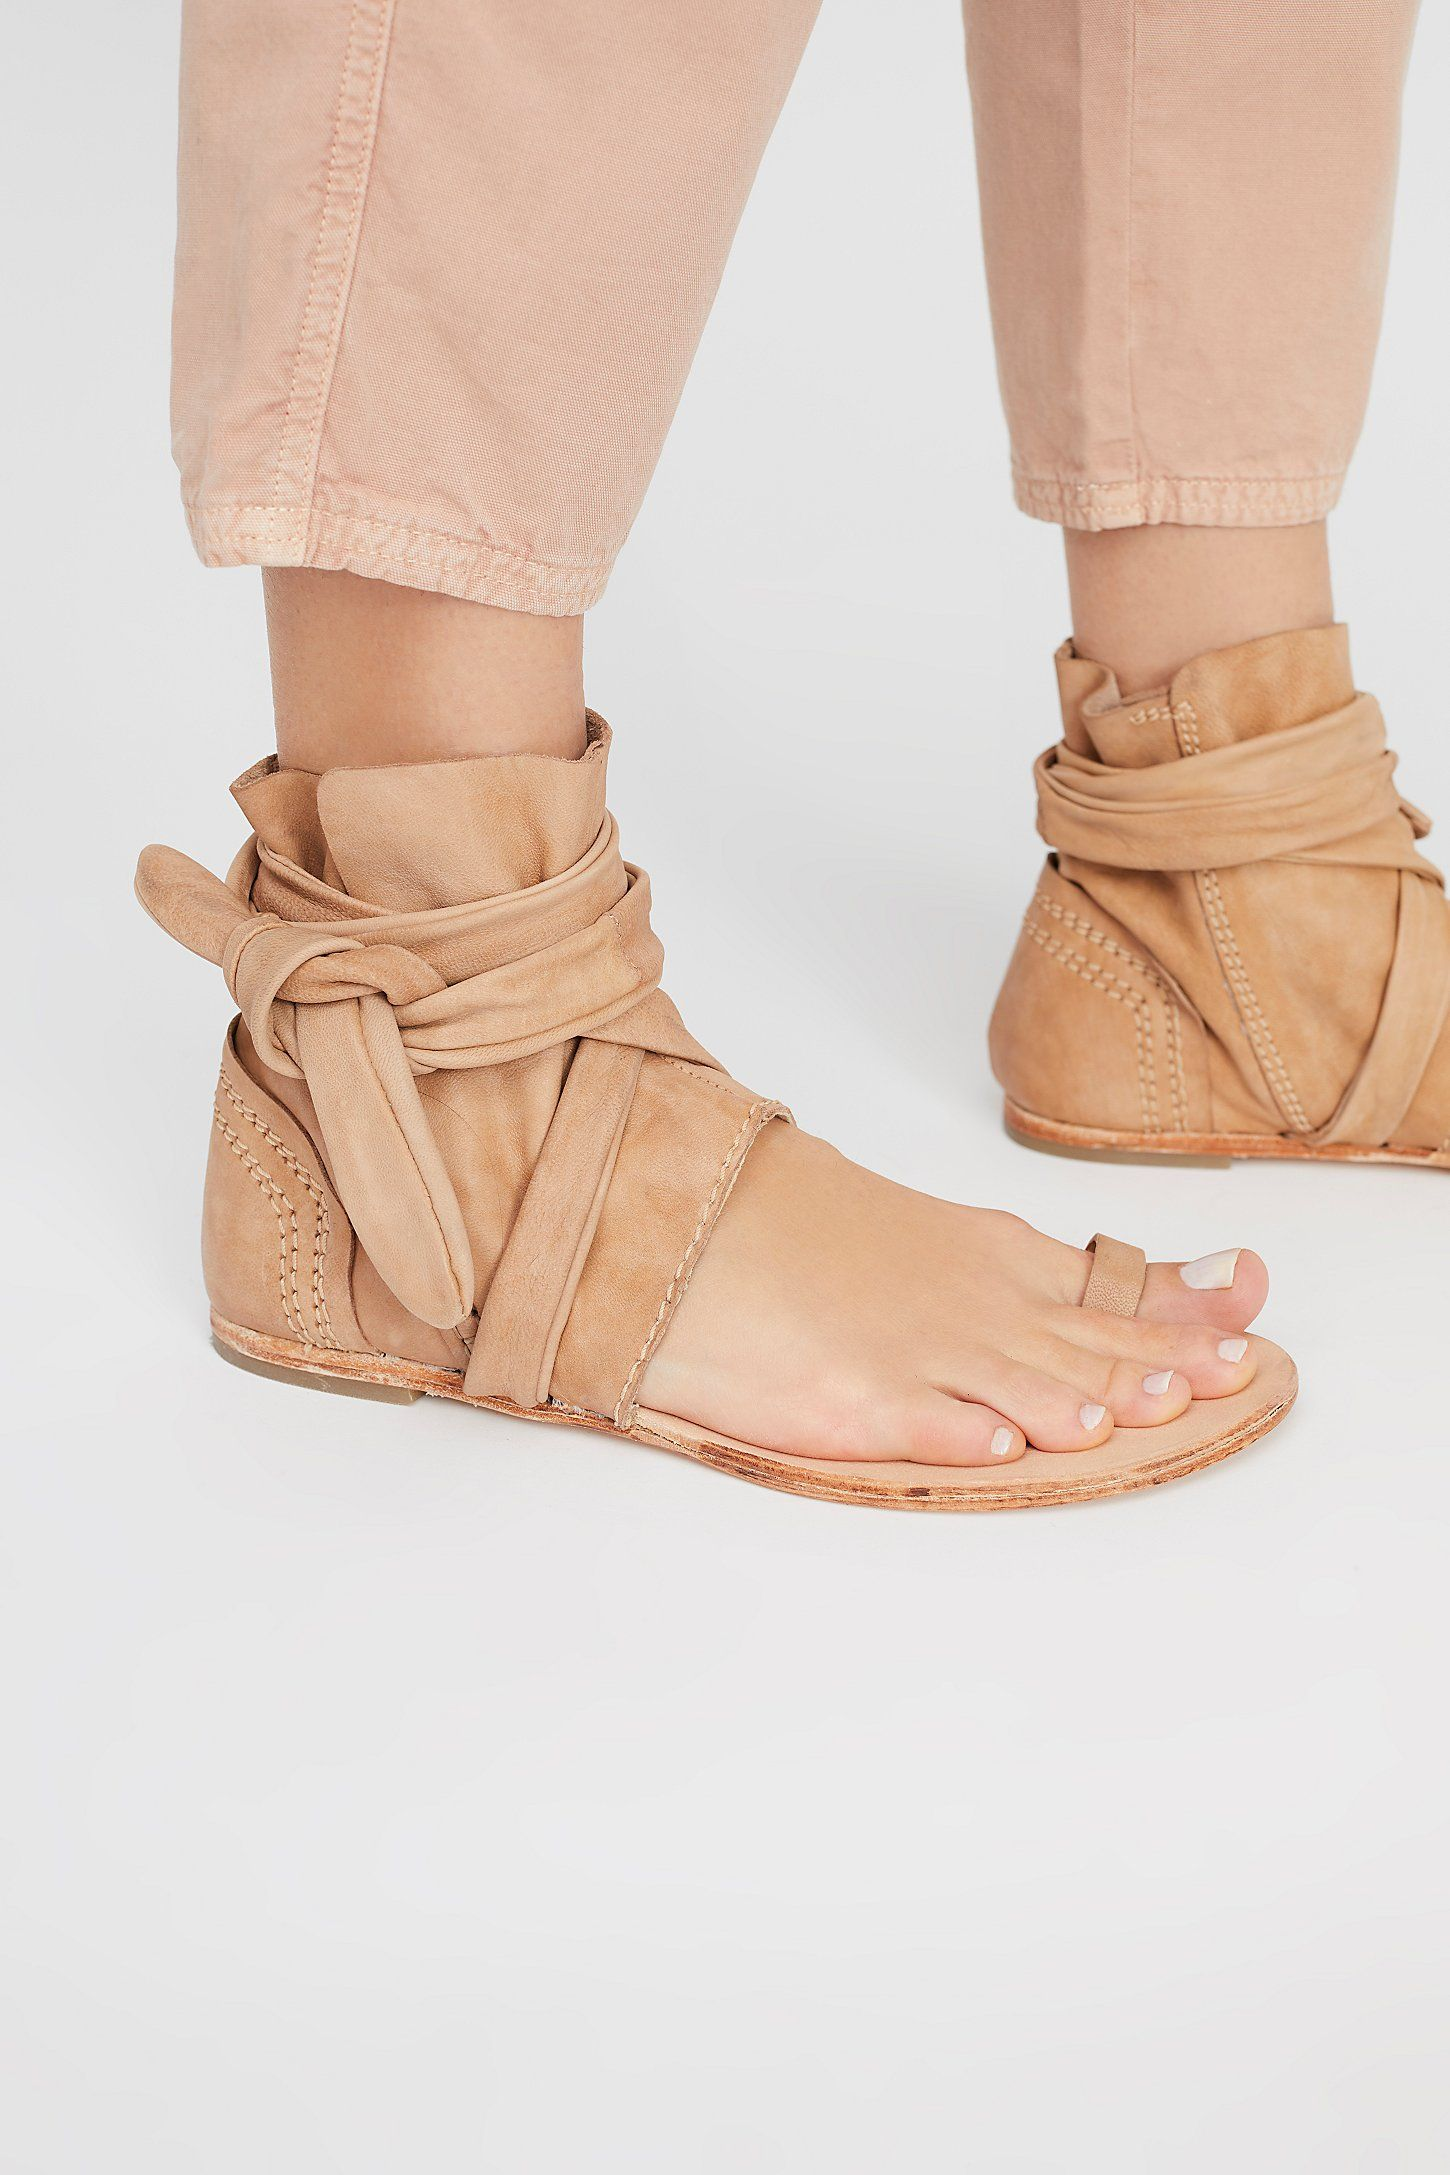 c6df0f460 Shop our Delaney Boot Sandal at FreePeople.com. Share style pics with FP  Me